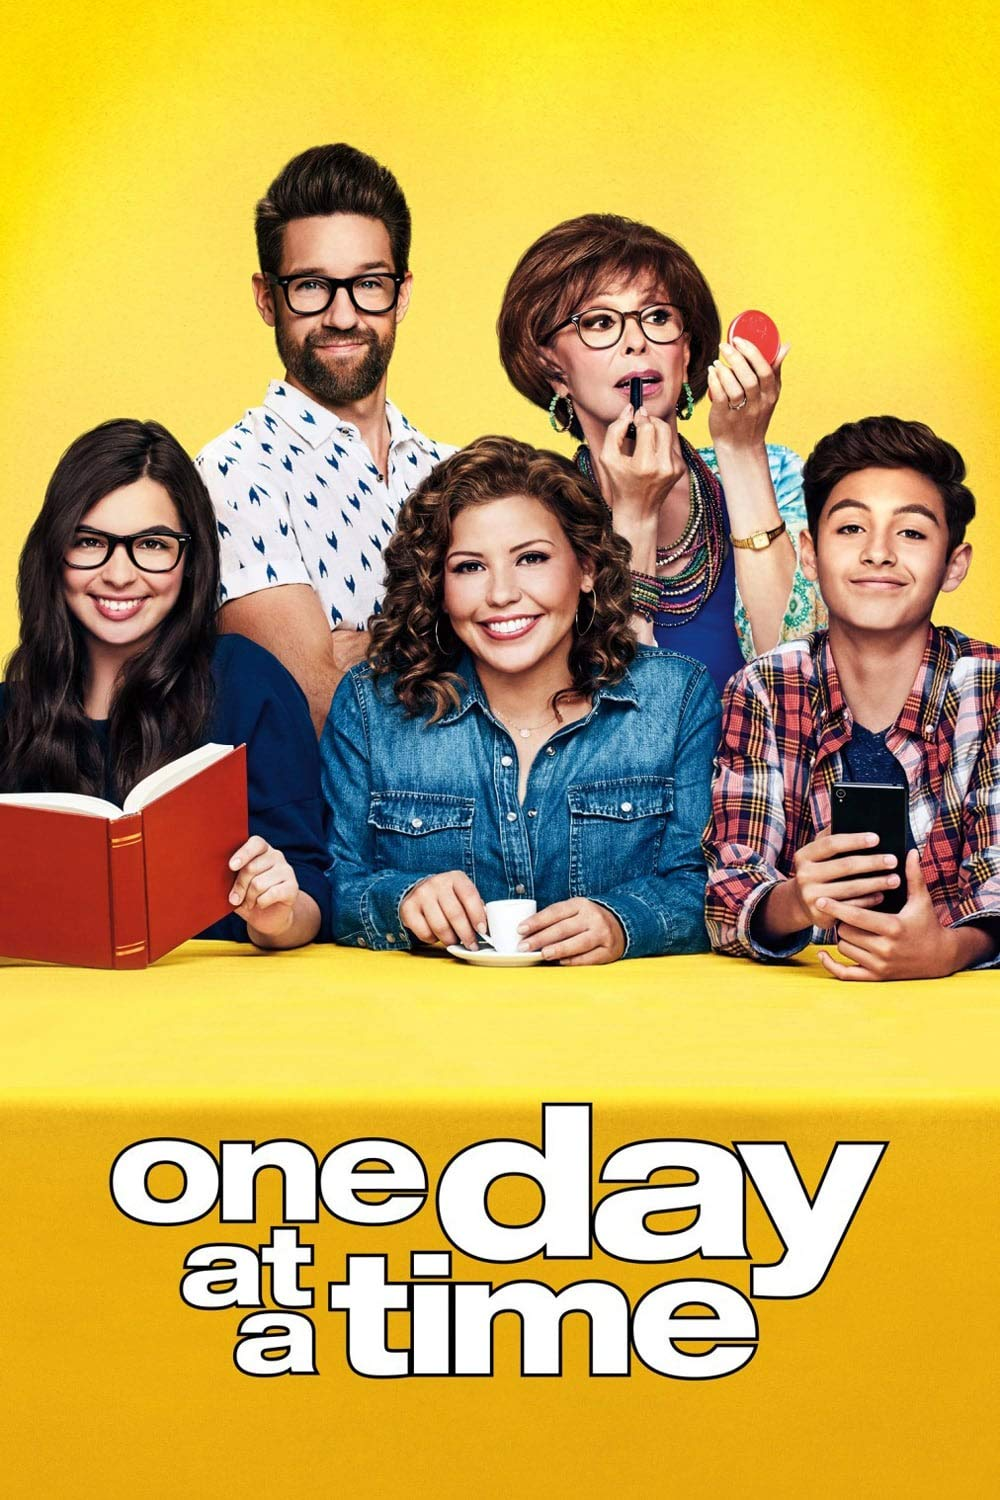 Amazon.com: One Day at a Time Poster, One Day at a Time Print, Tv Series  Poster, One Day at a Time Art, One Day at a Time Tv Show Gifts : Handmade